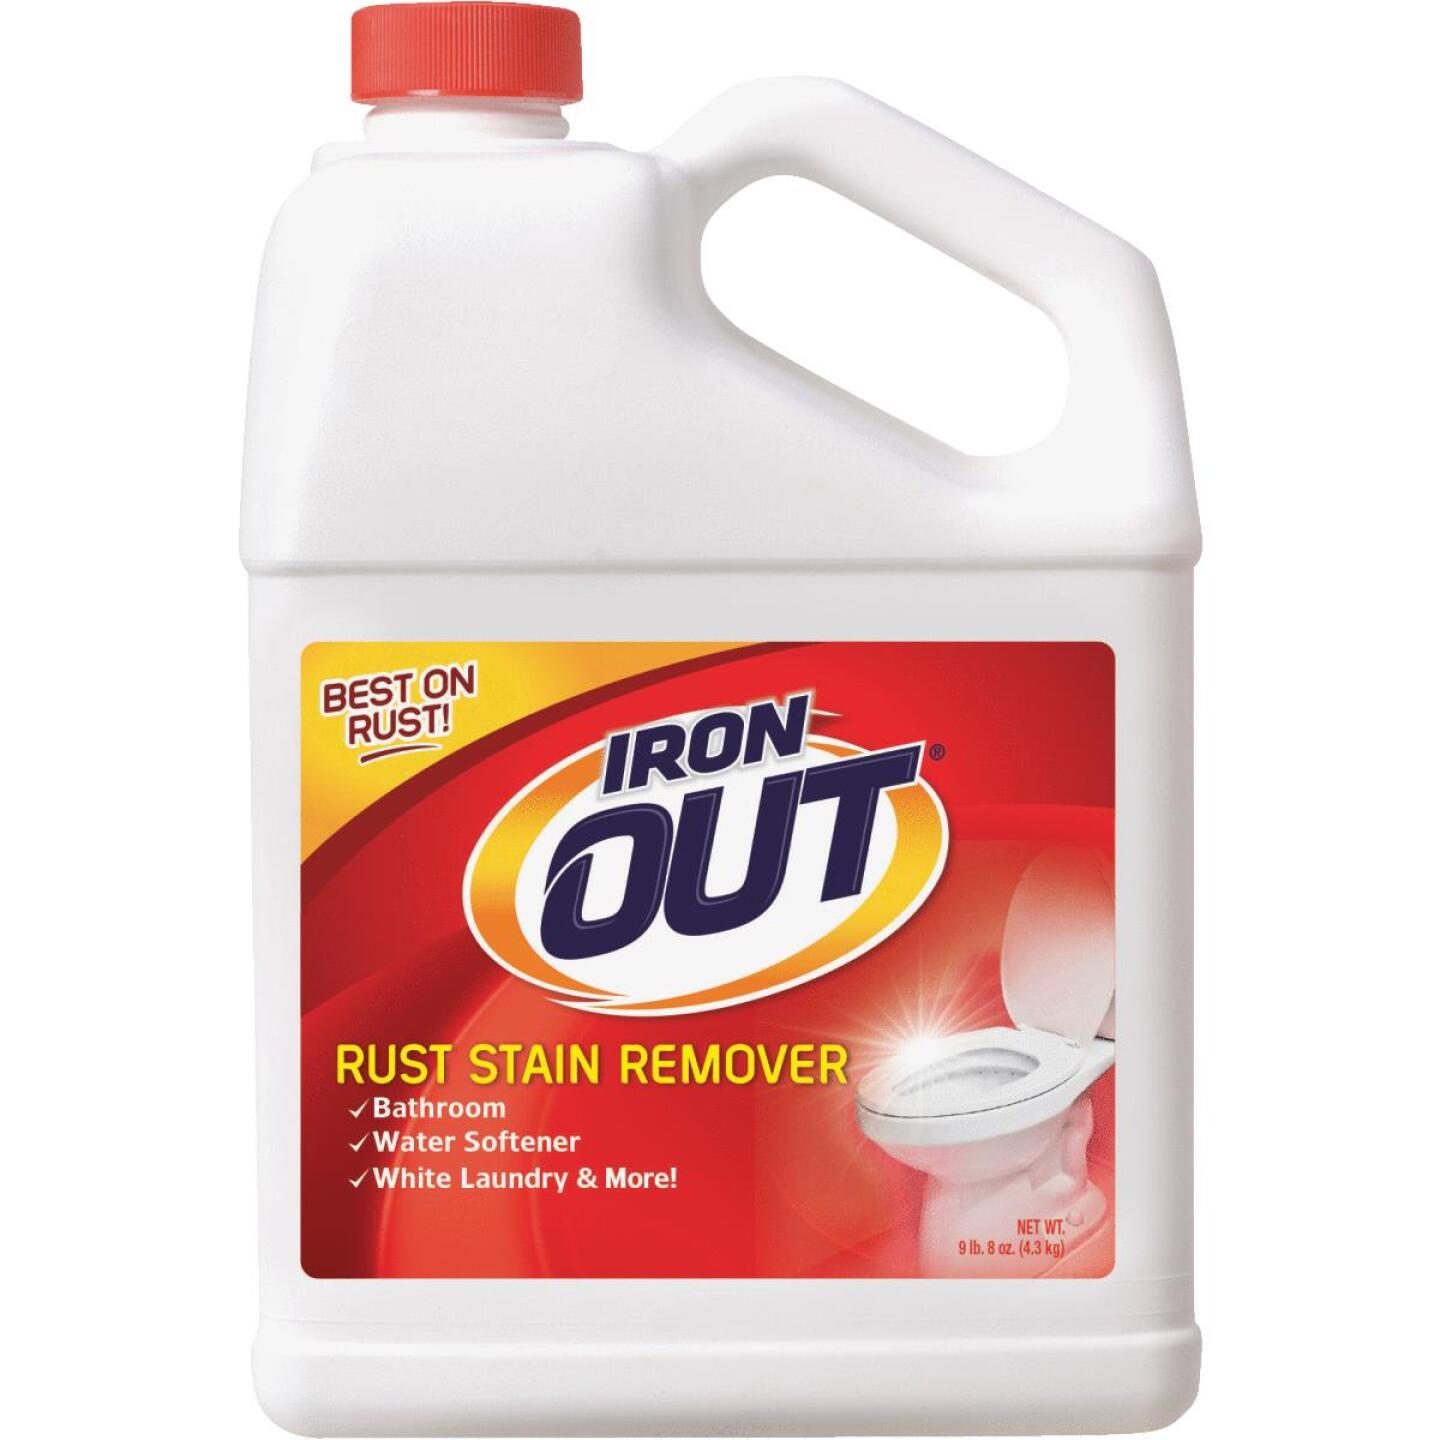 Iron Out 152 Oz. All-Purpose Rust and Stain Remover Image 1